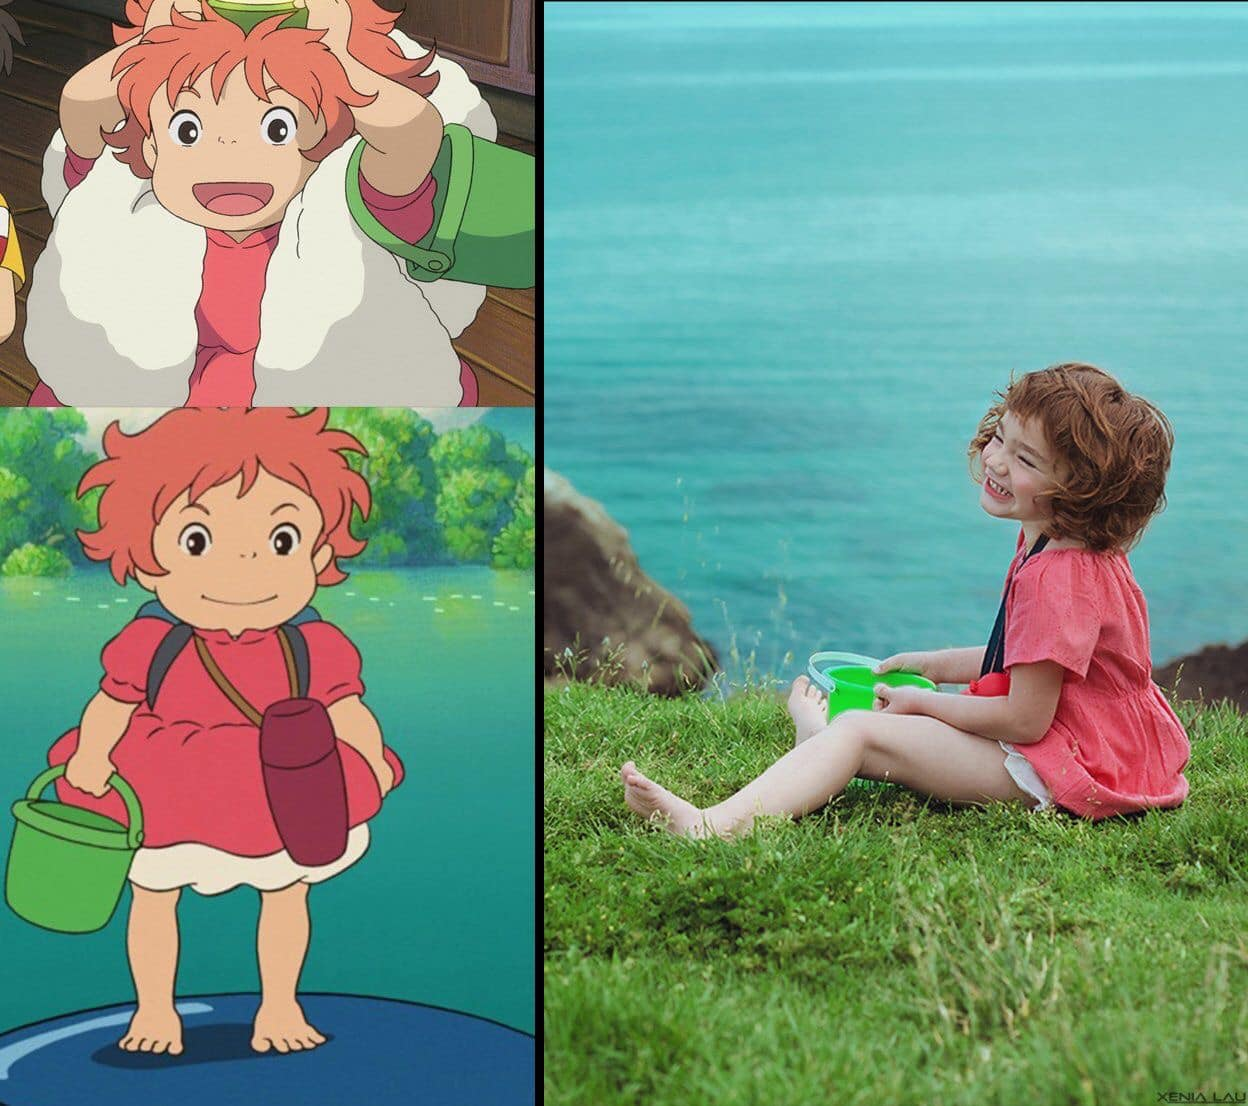 Ponyo on the Cliff by the Sea.